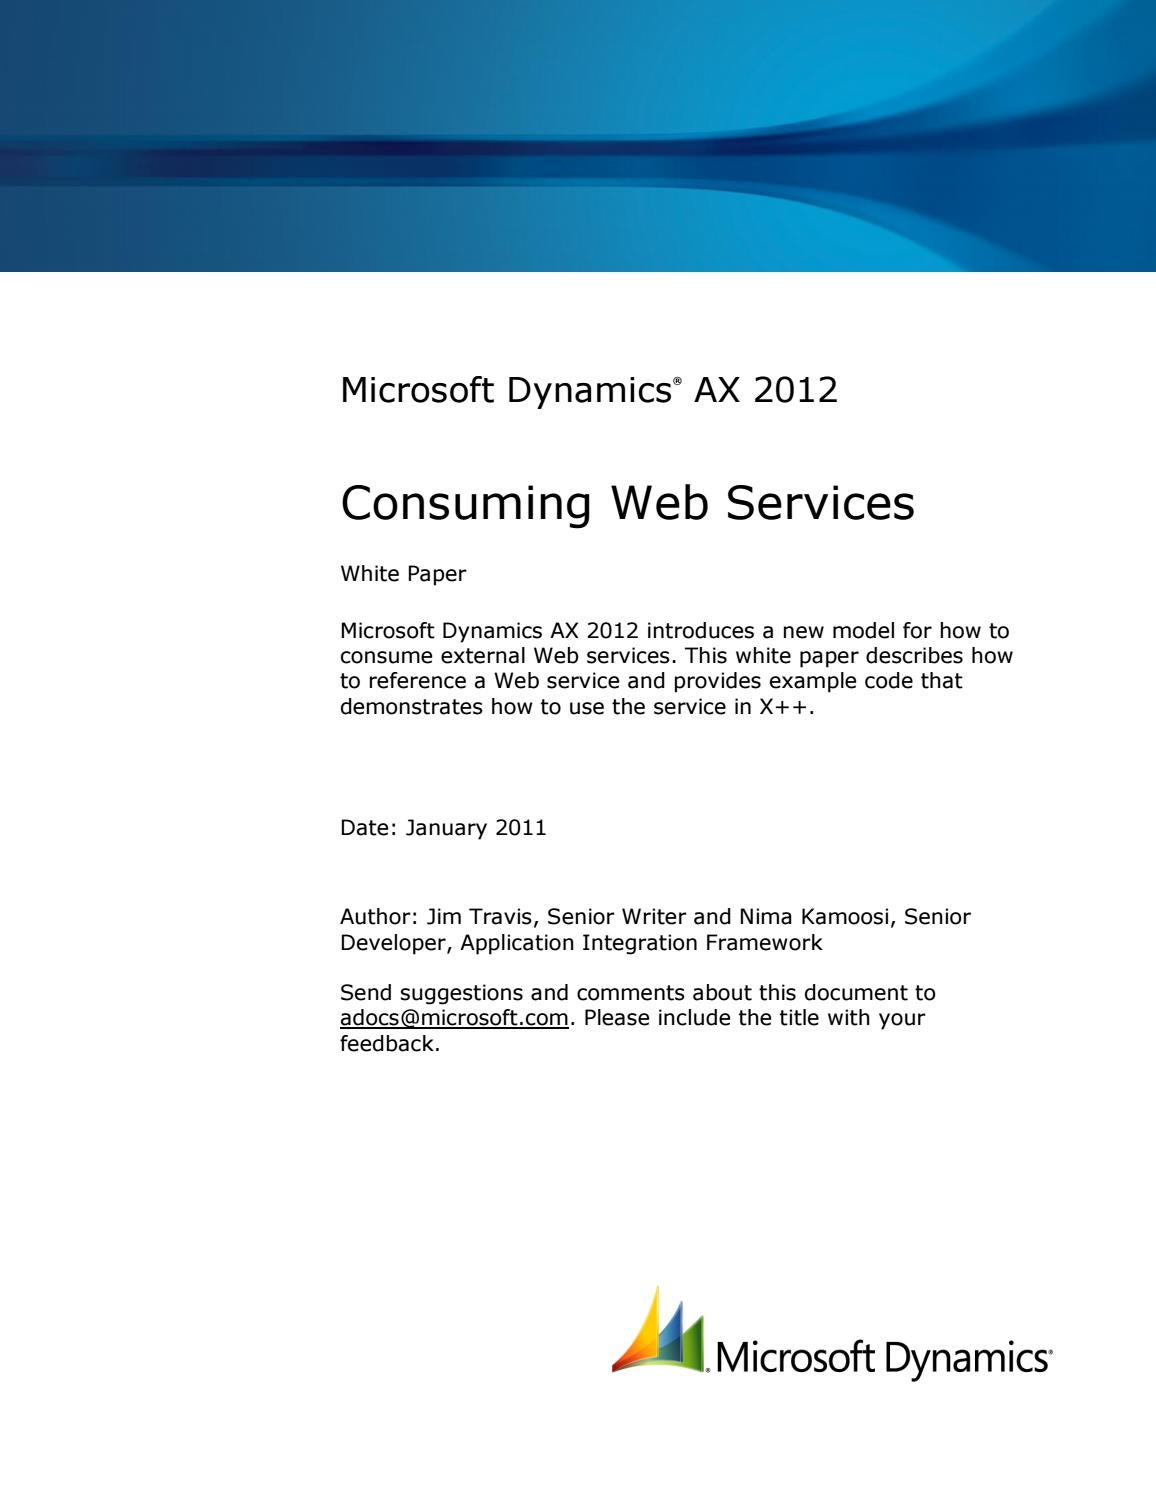 Microsoft Dynamics AX 2012 - Consuming web services by ANEGIS